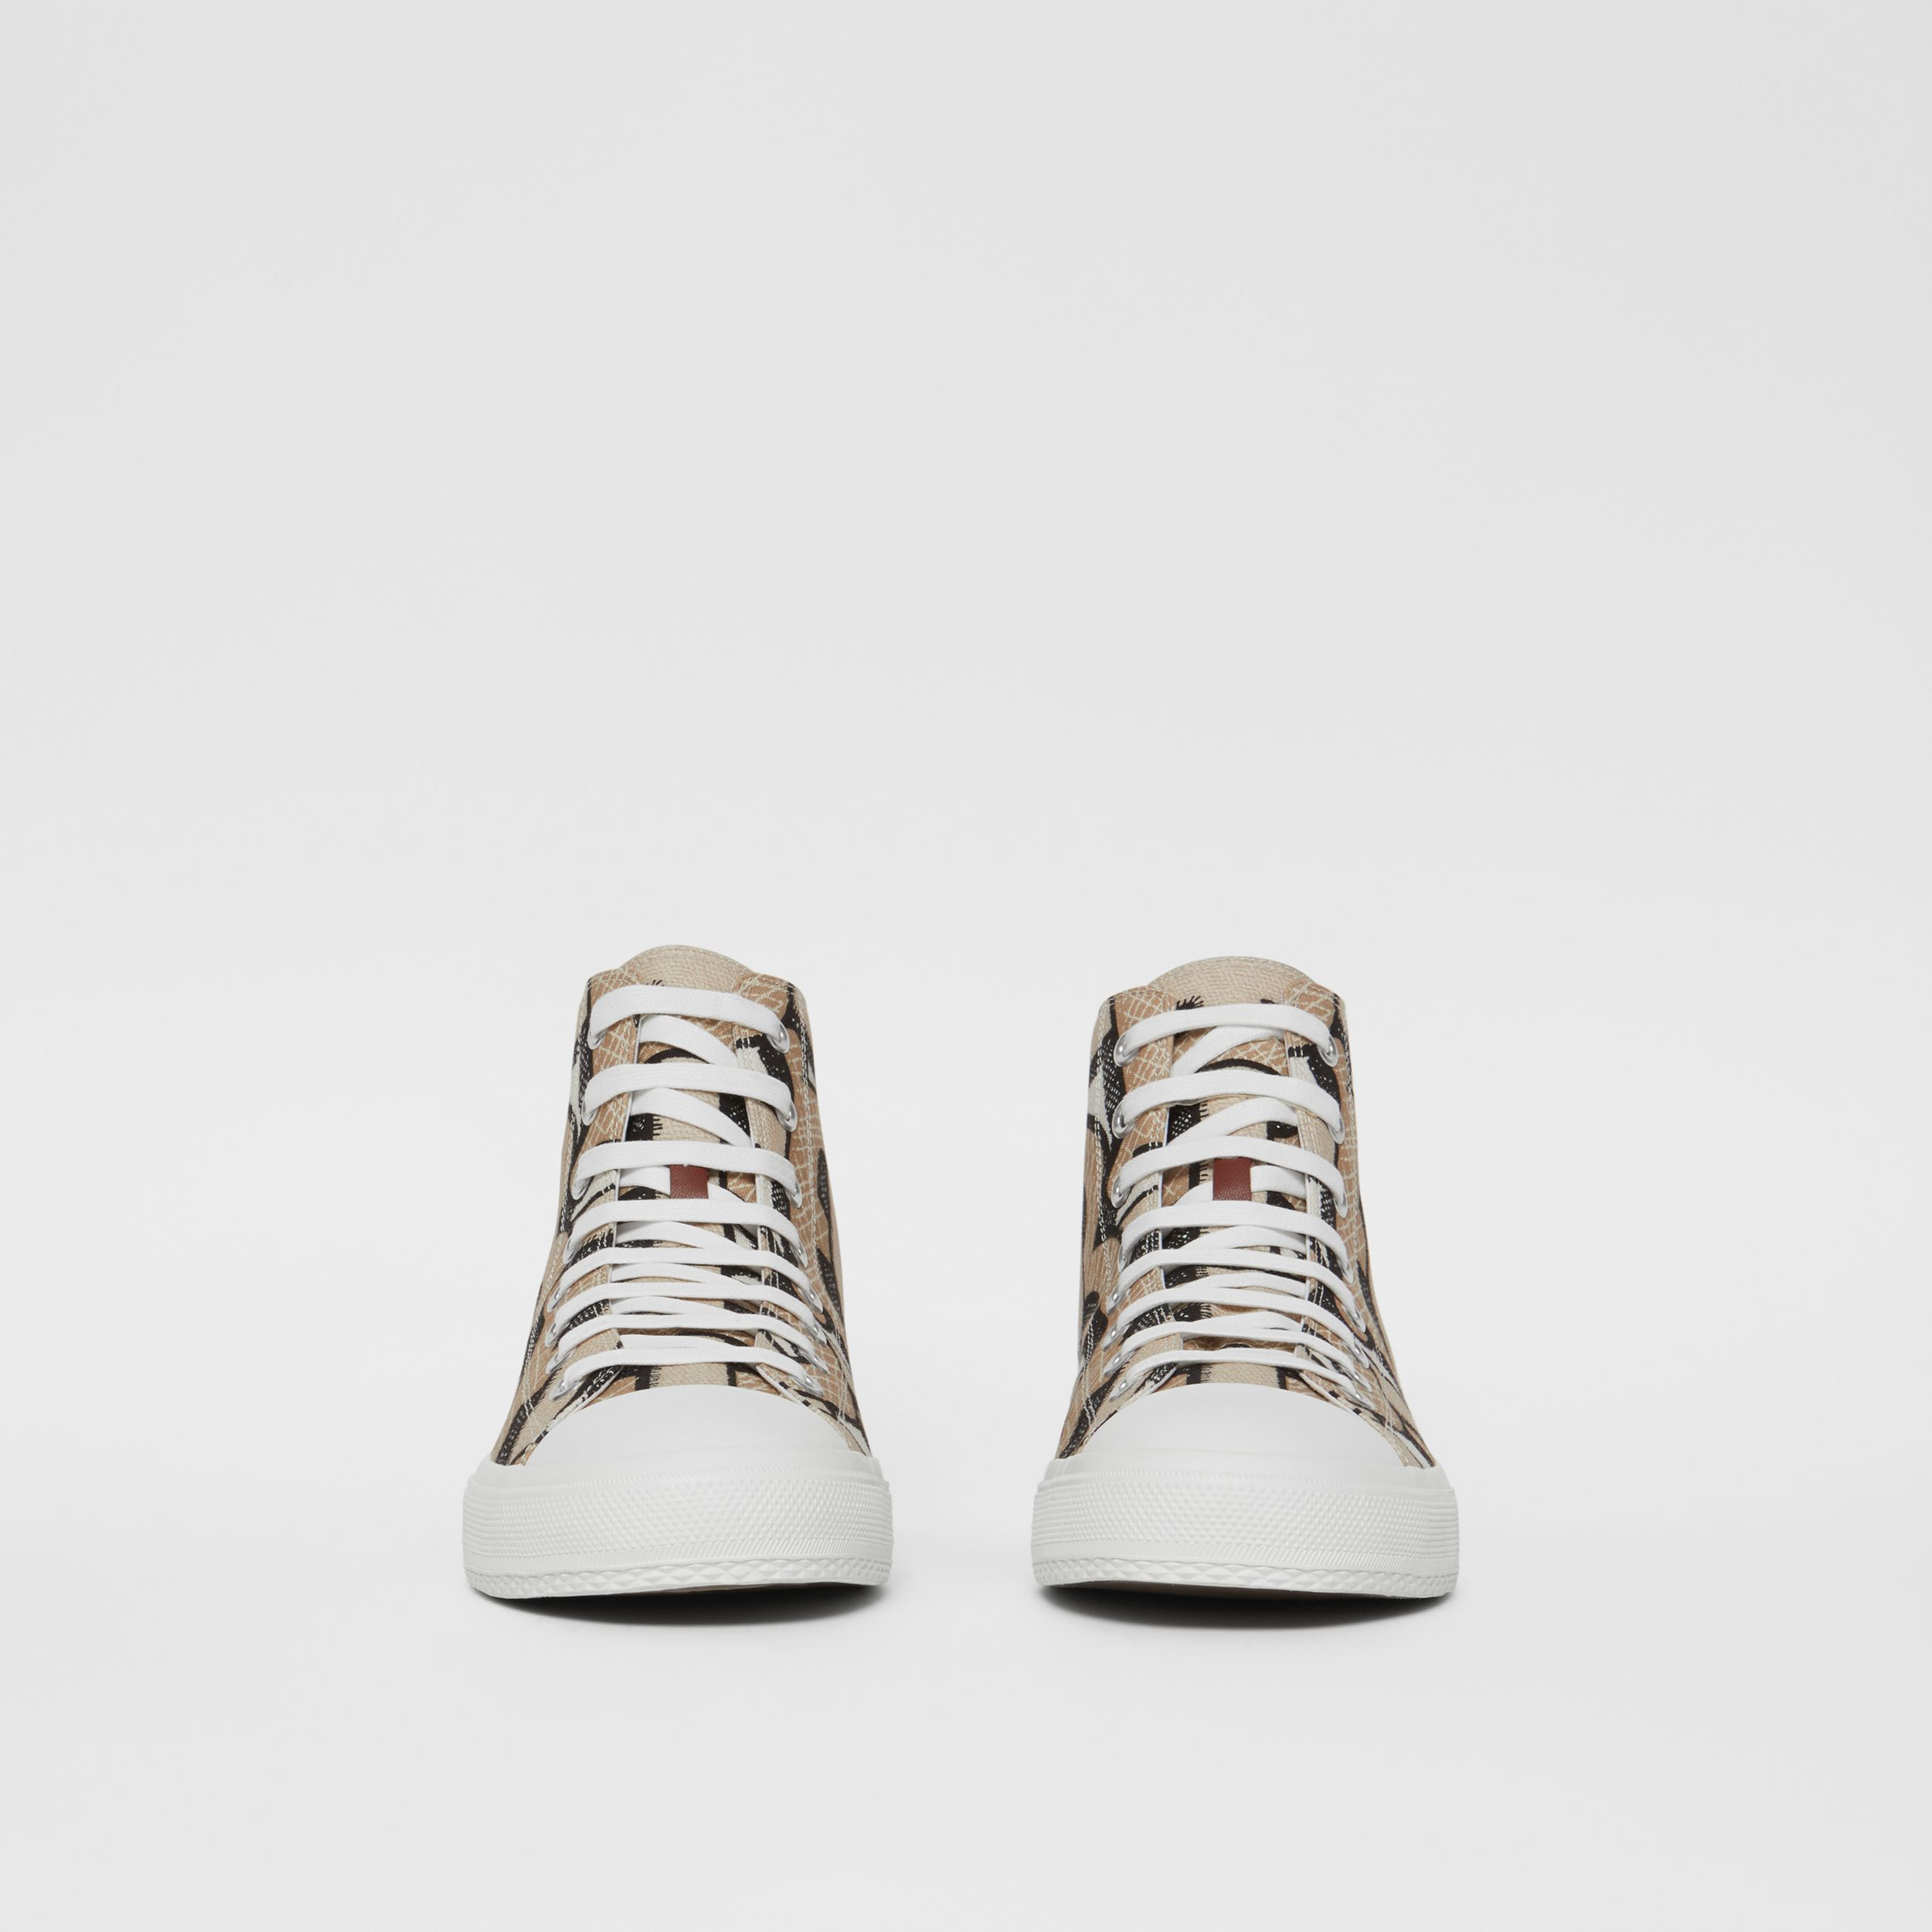 Monogram Print Cotton Canvas High-top Sneakers in Dark Beige - Men | Burberry - 3